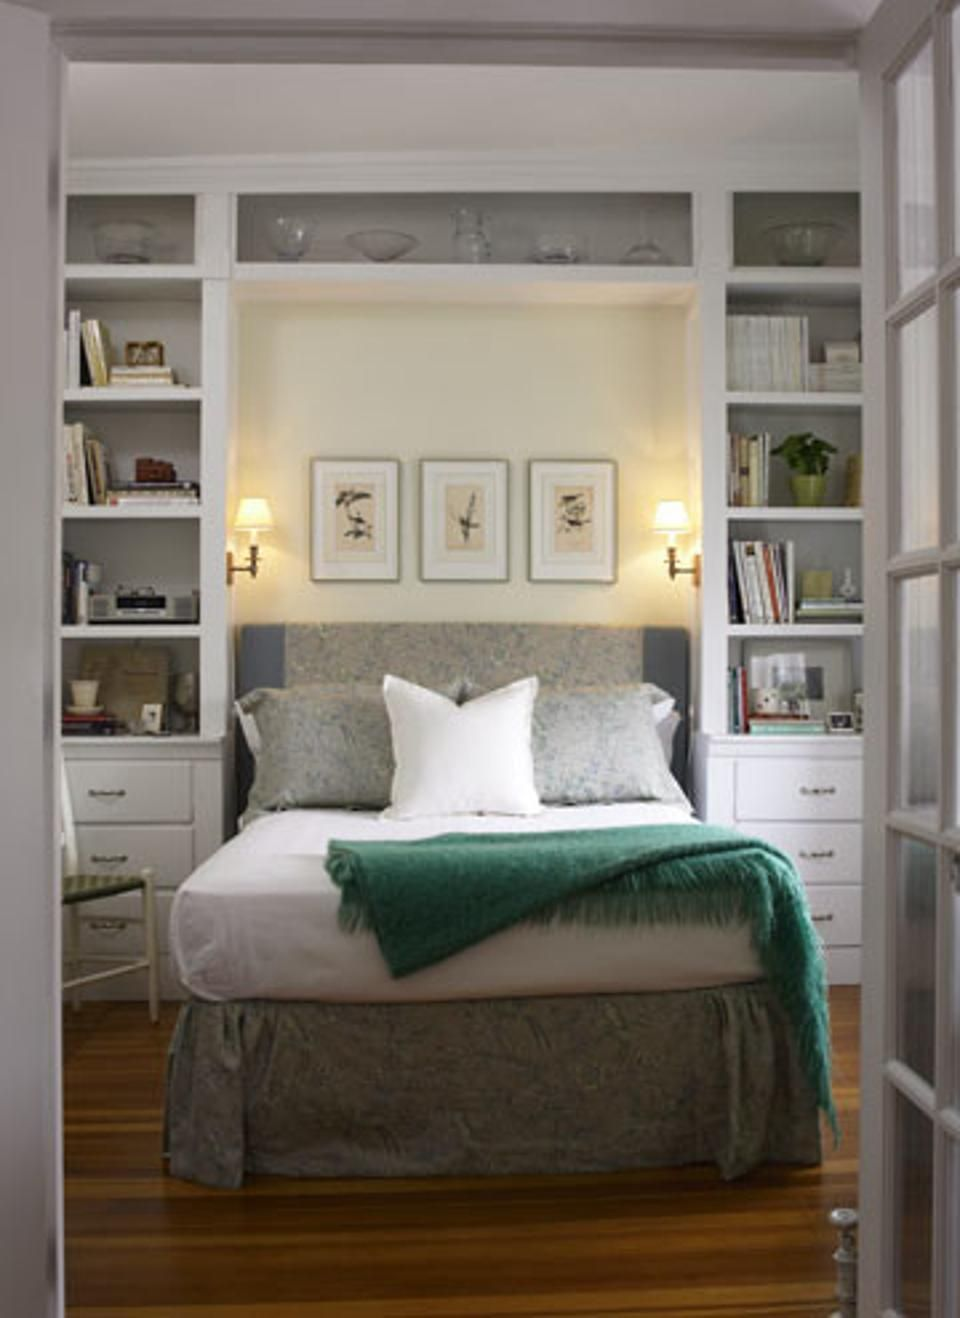 10 Small Master Bedroom Storage Ideas Elegant And Beautiful Traditional Bedroom Small Bedroom Remodel Bedroom